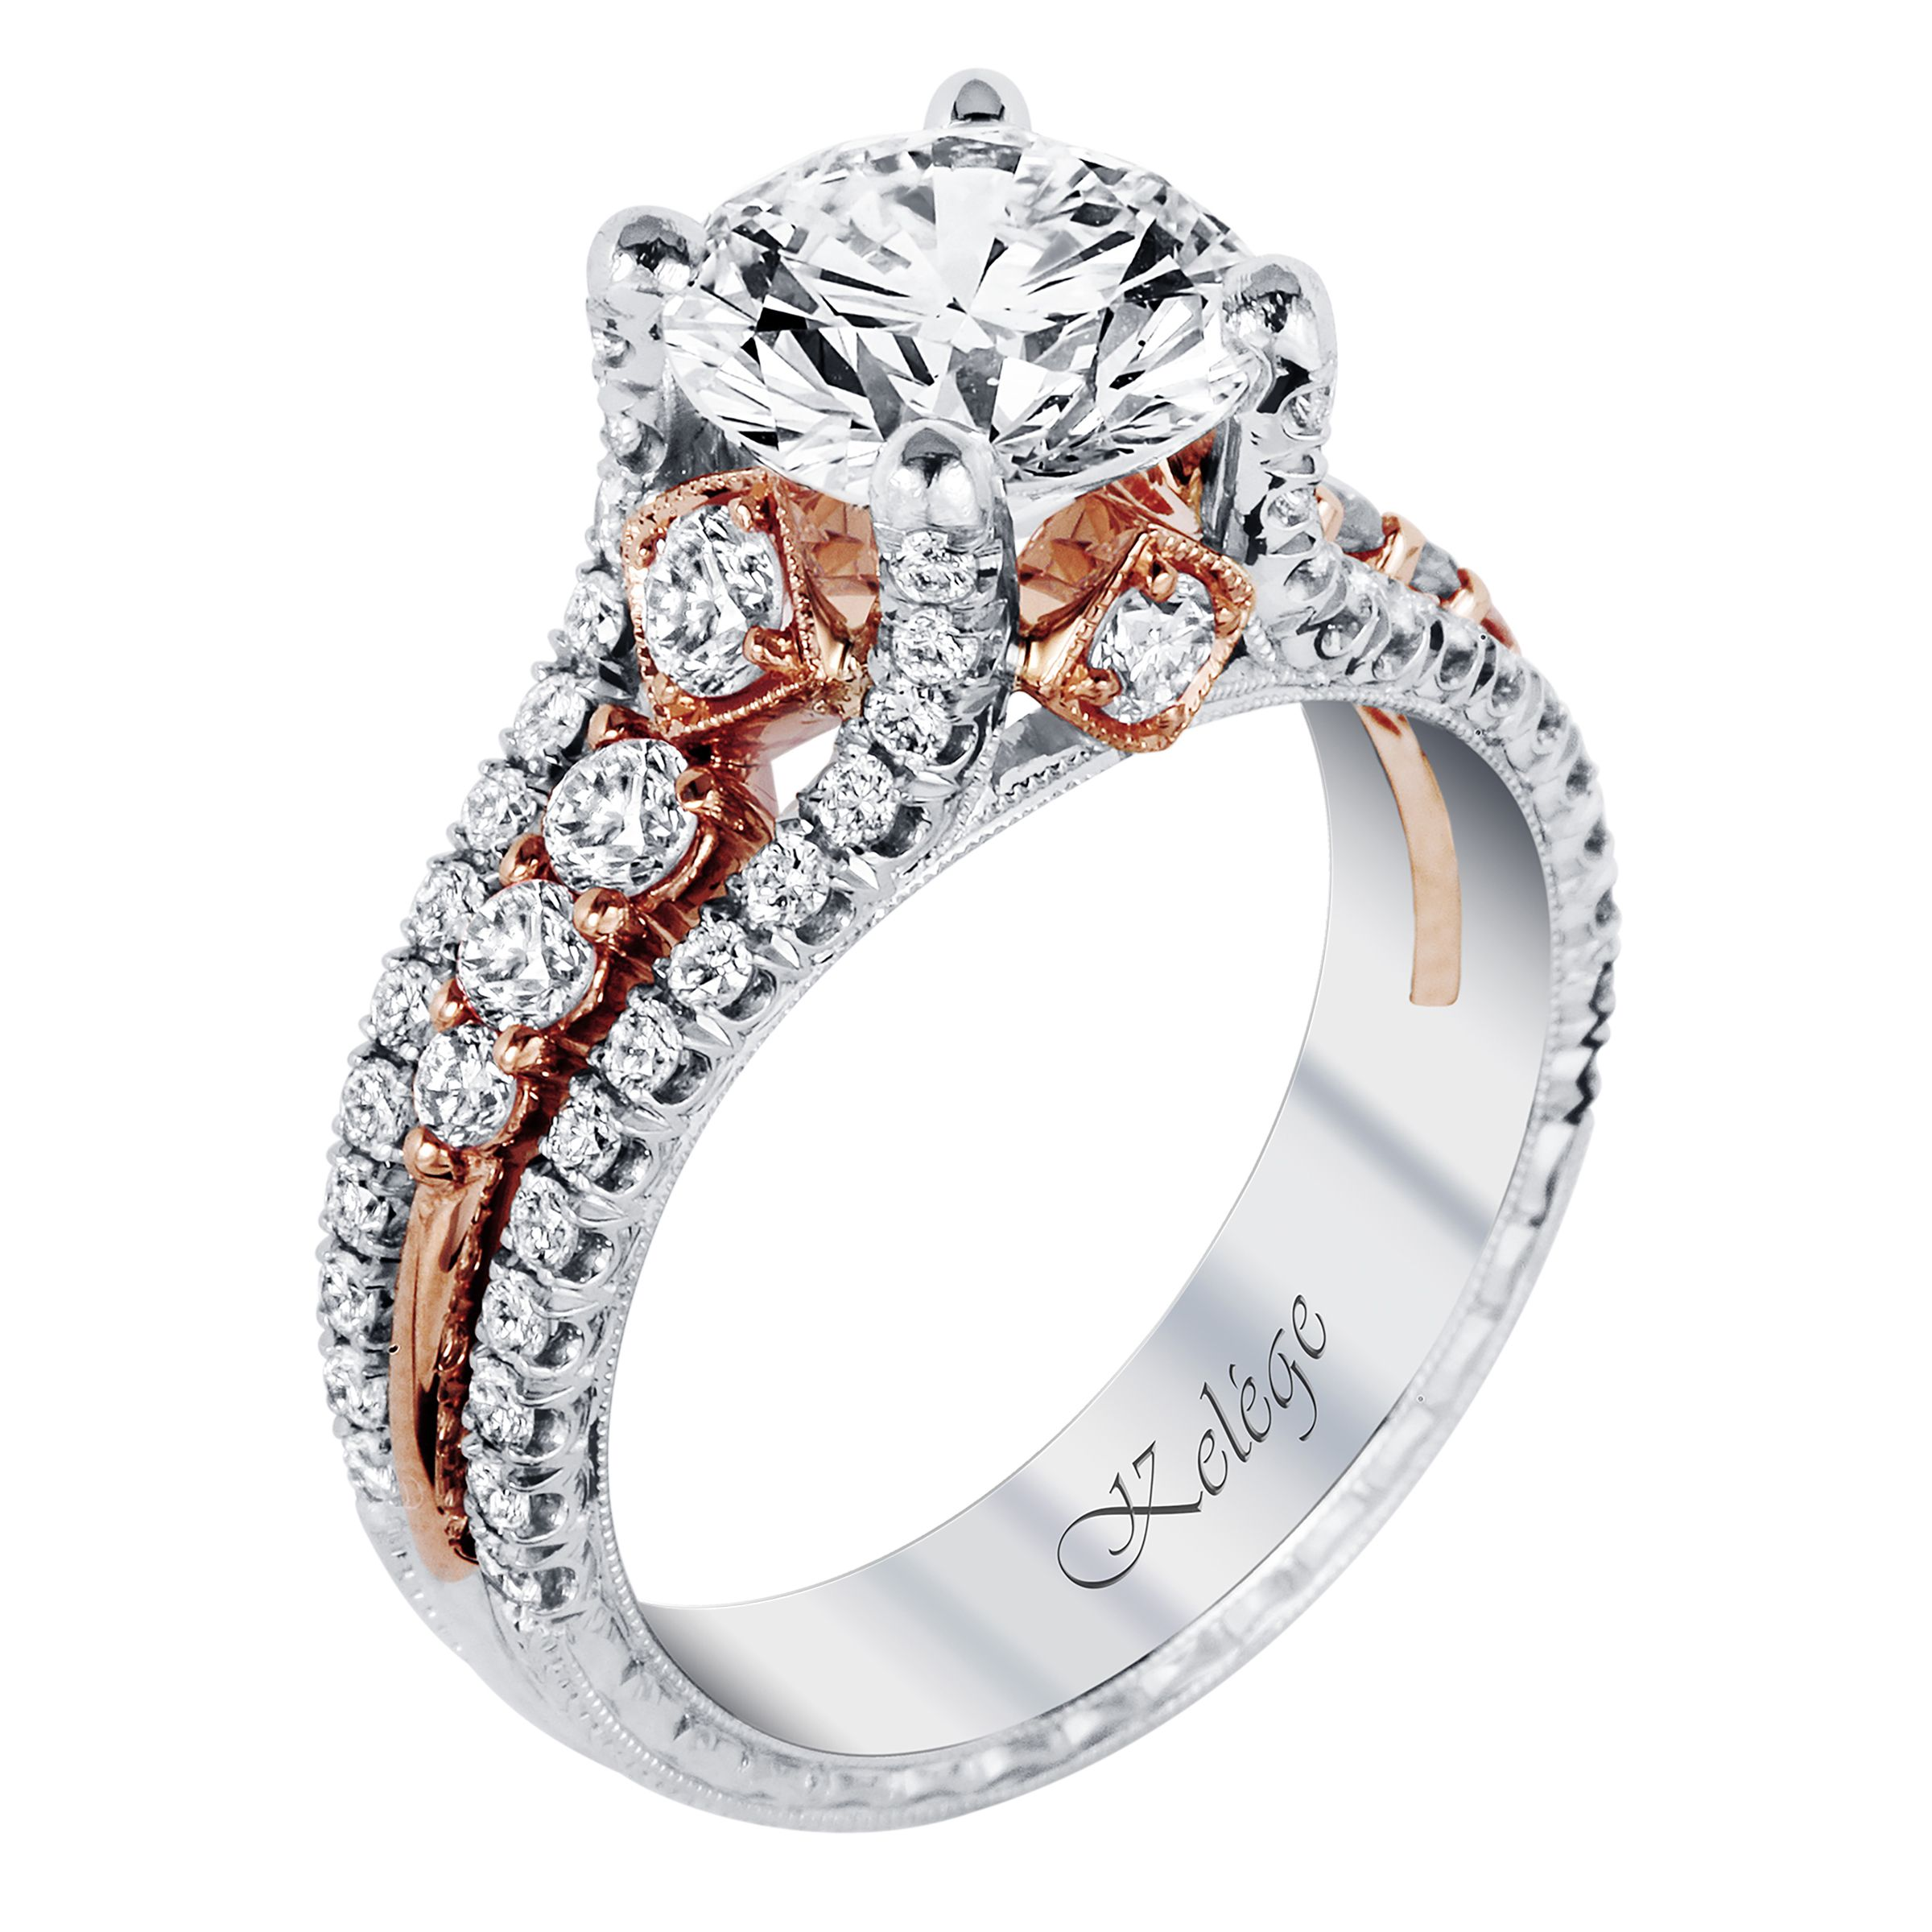 The Art of Individual Perfection. Platinum Engagement Ring